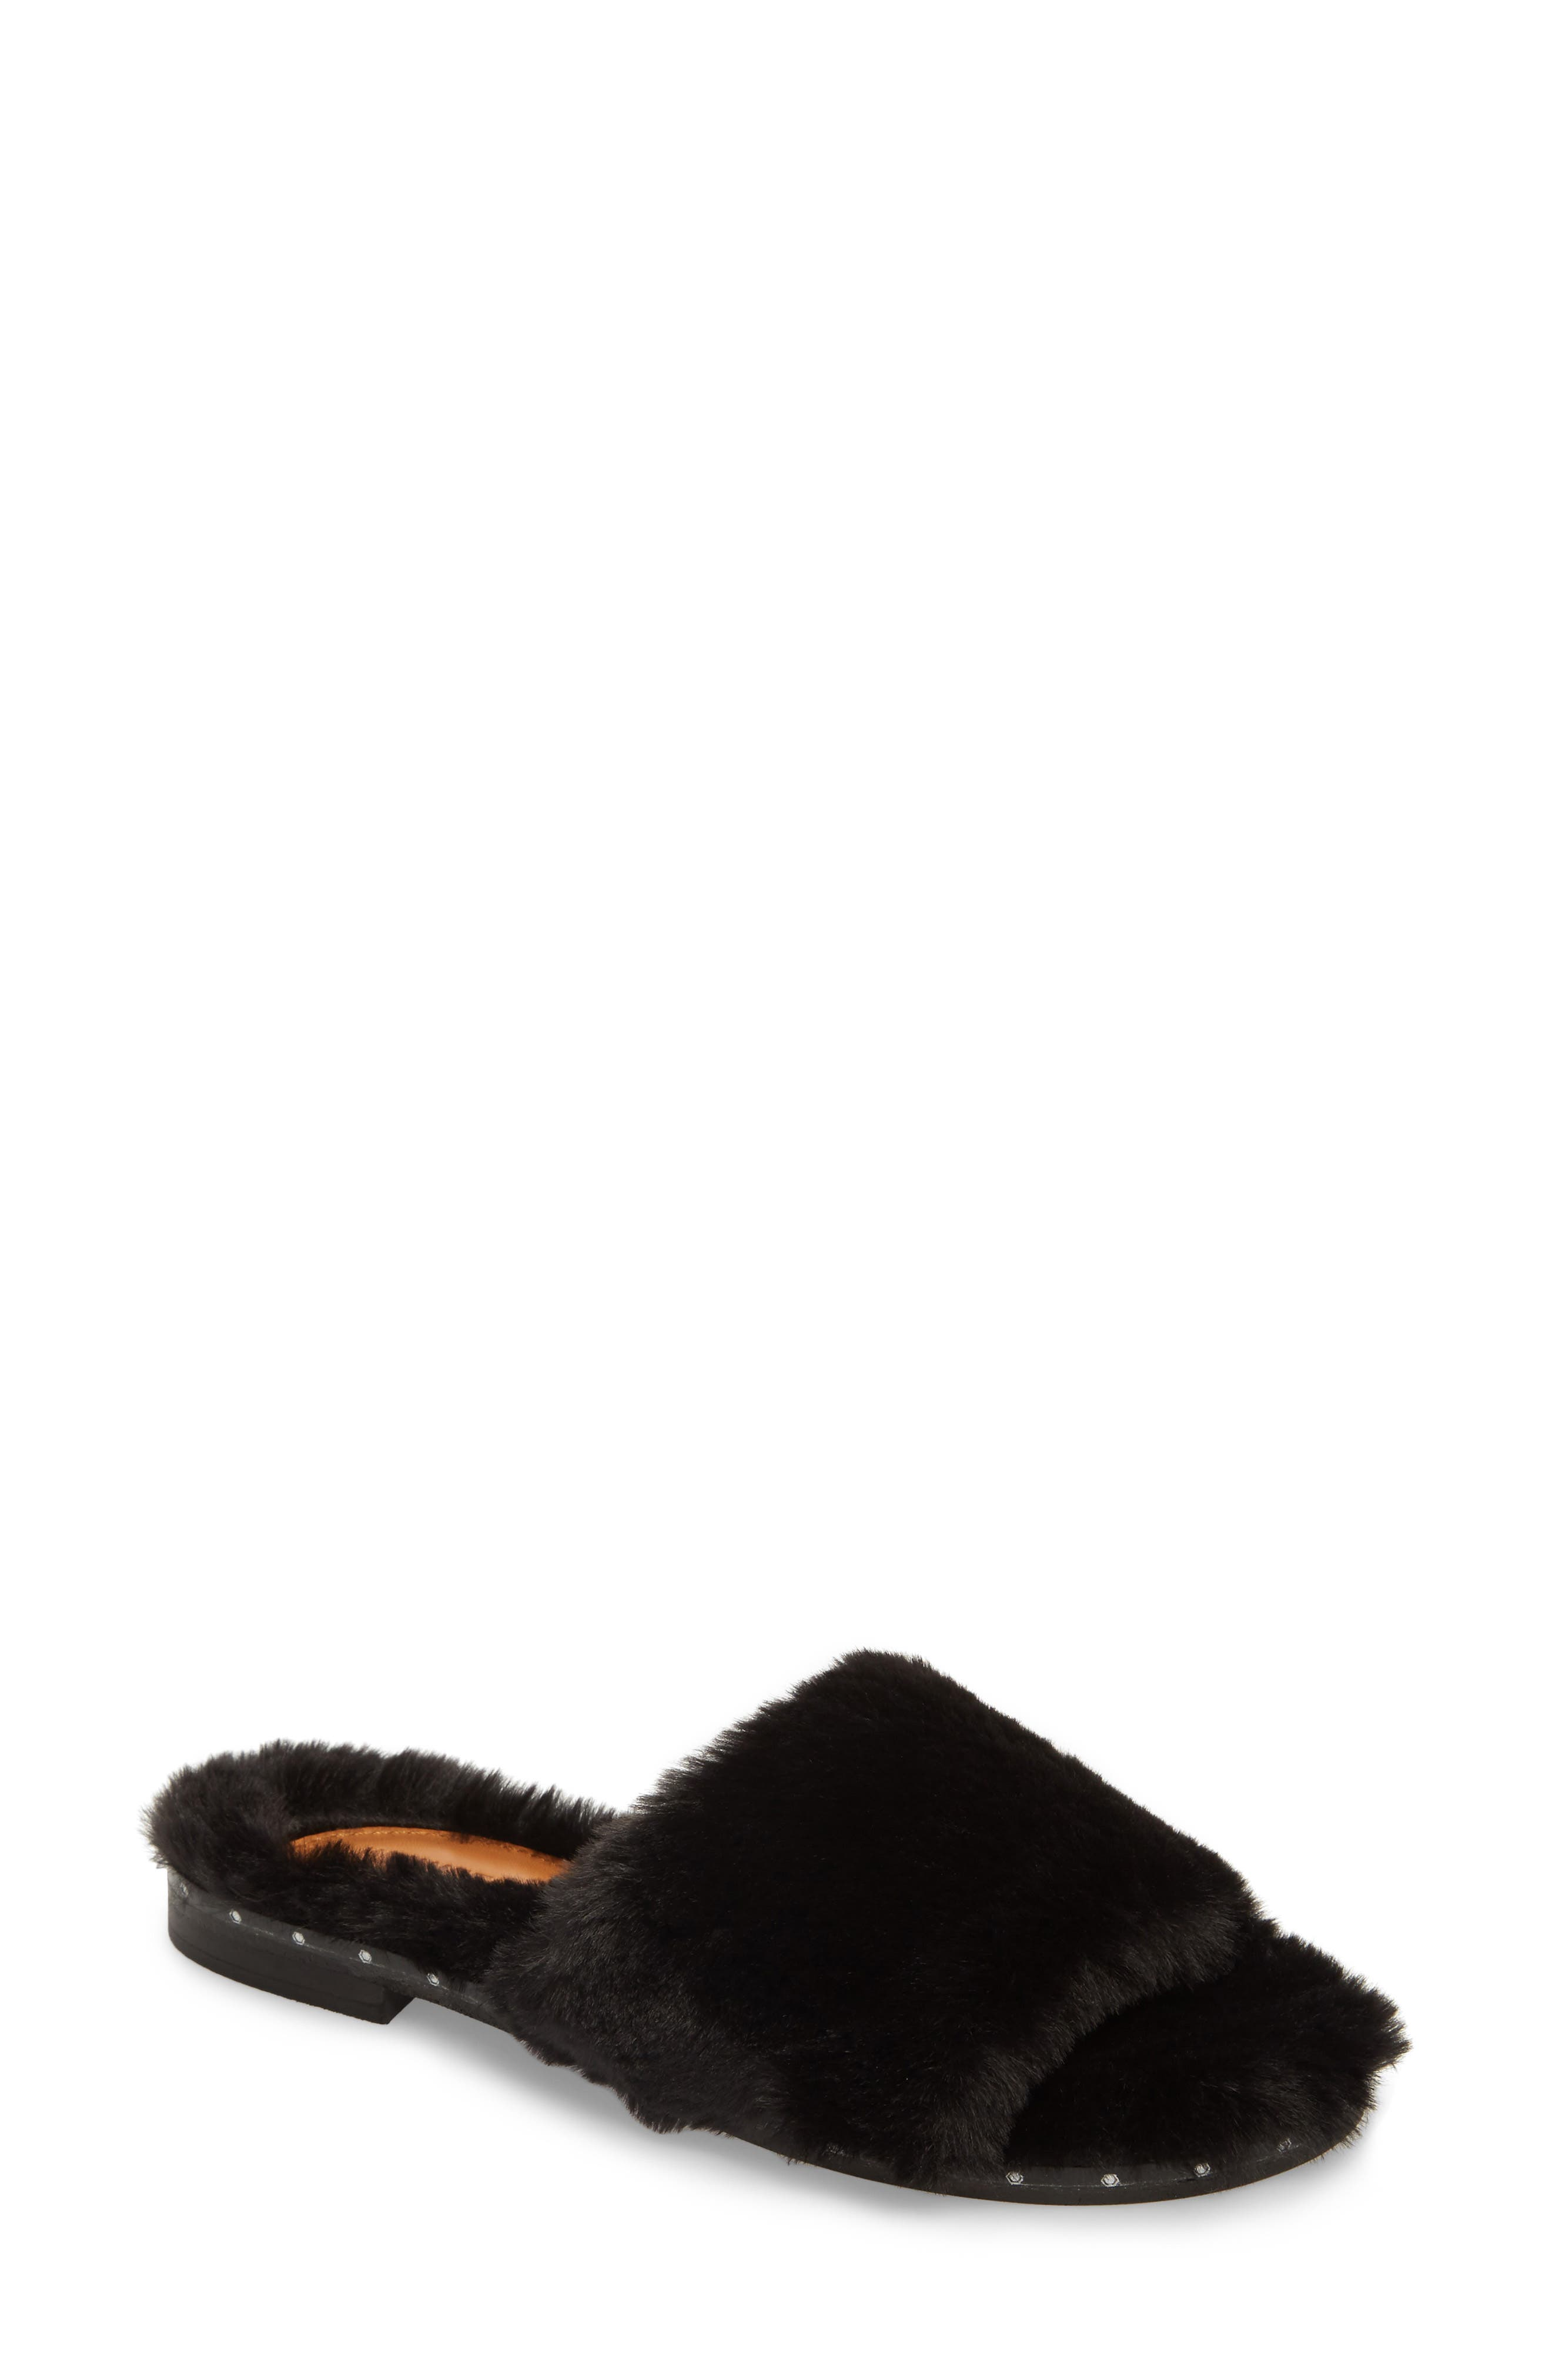 Peggy Faux Fur Slide Sandal,                         Main,                         color, Black Faux Fur